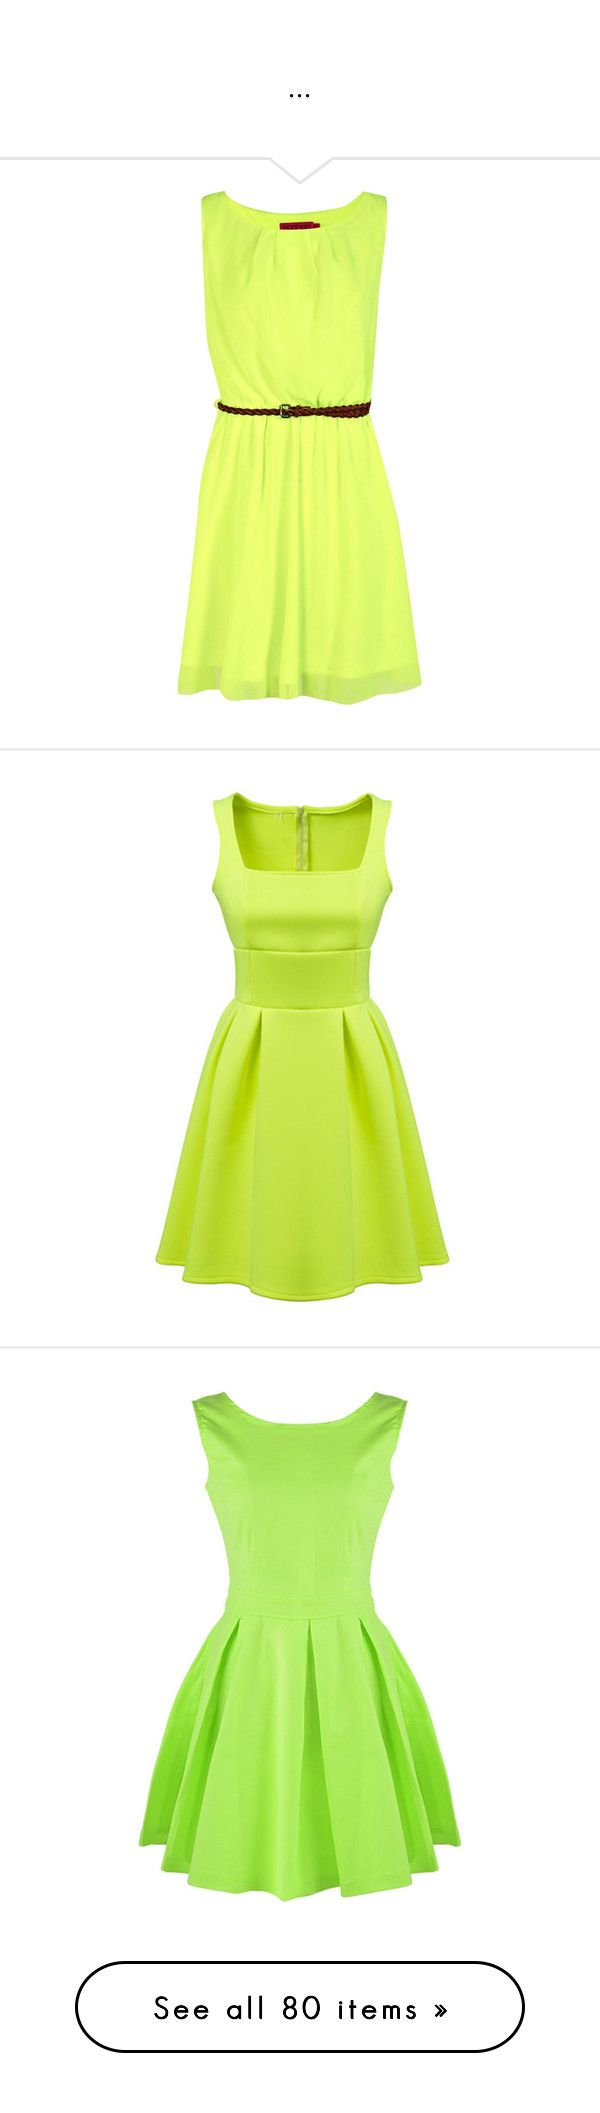 """..."" by patricia019 ❤ liked on Polyvore featuring dresses, vestidos, green dress, green skater dress, woven dress, neon skater dress, neon dress, green, sleeveless pleated dress and slim fitting dresses"